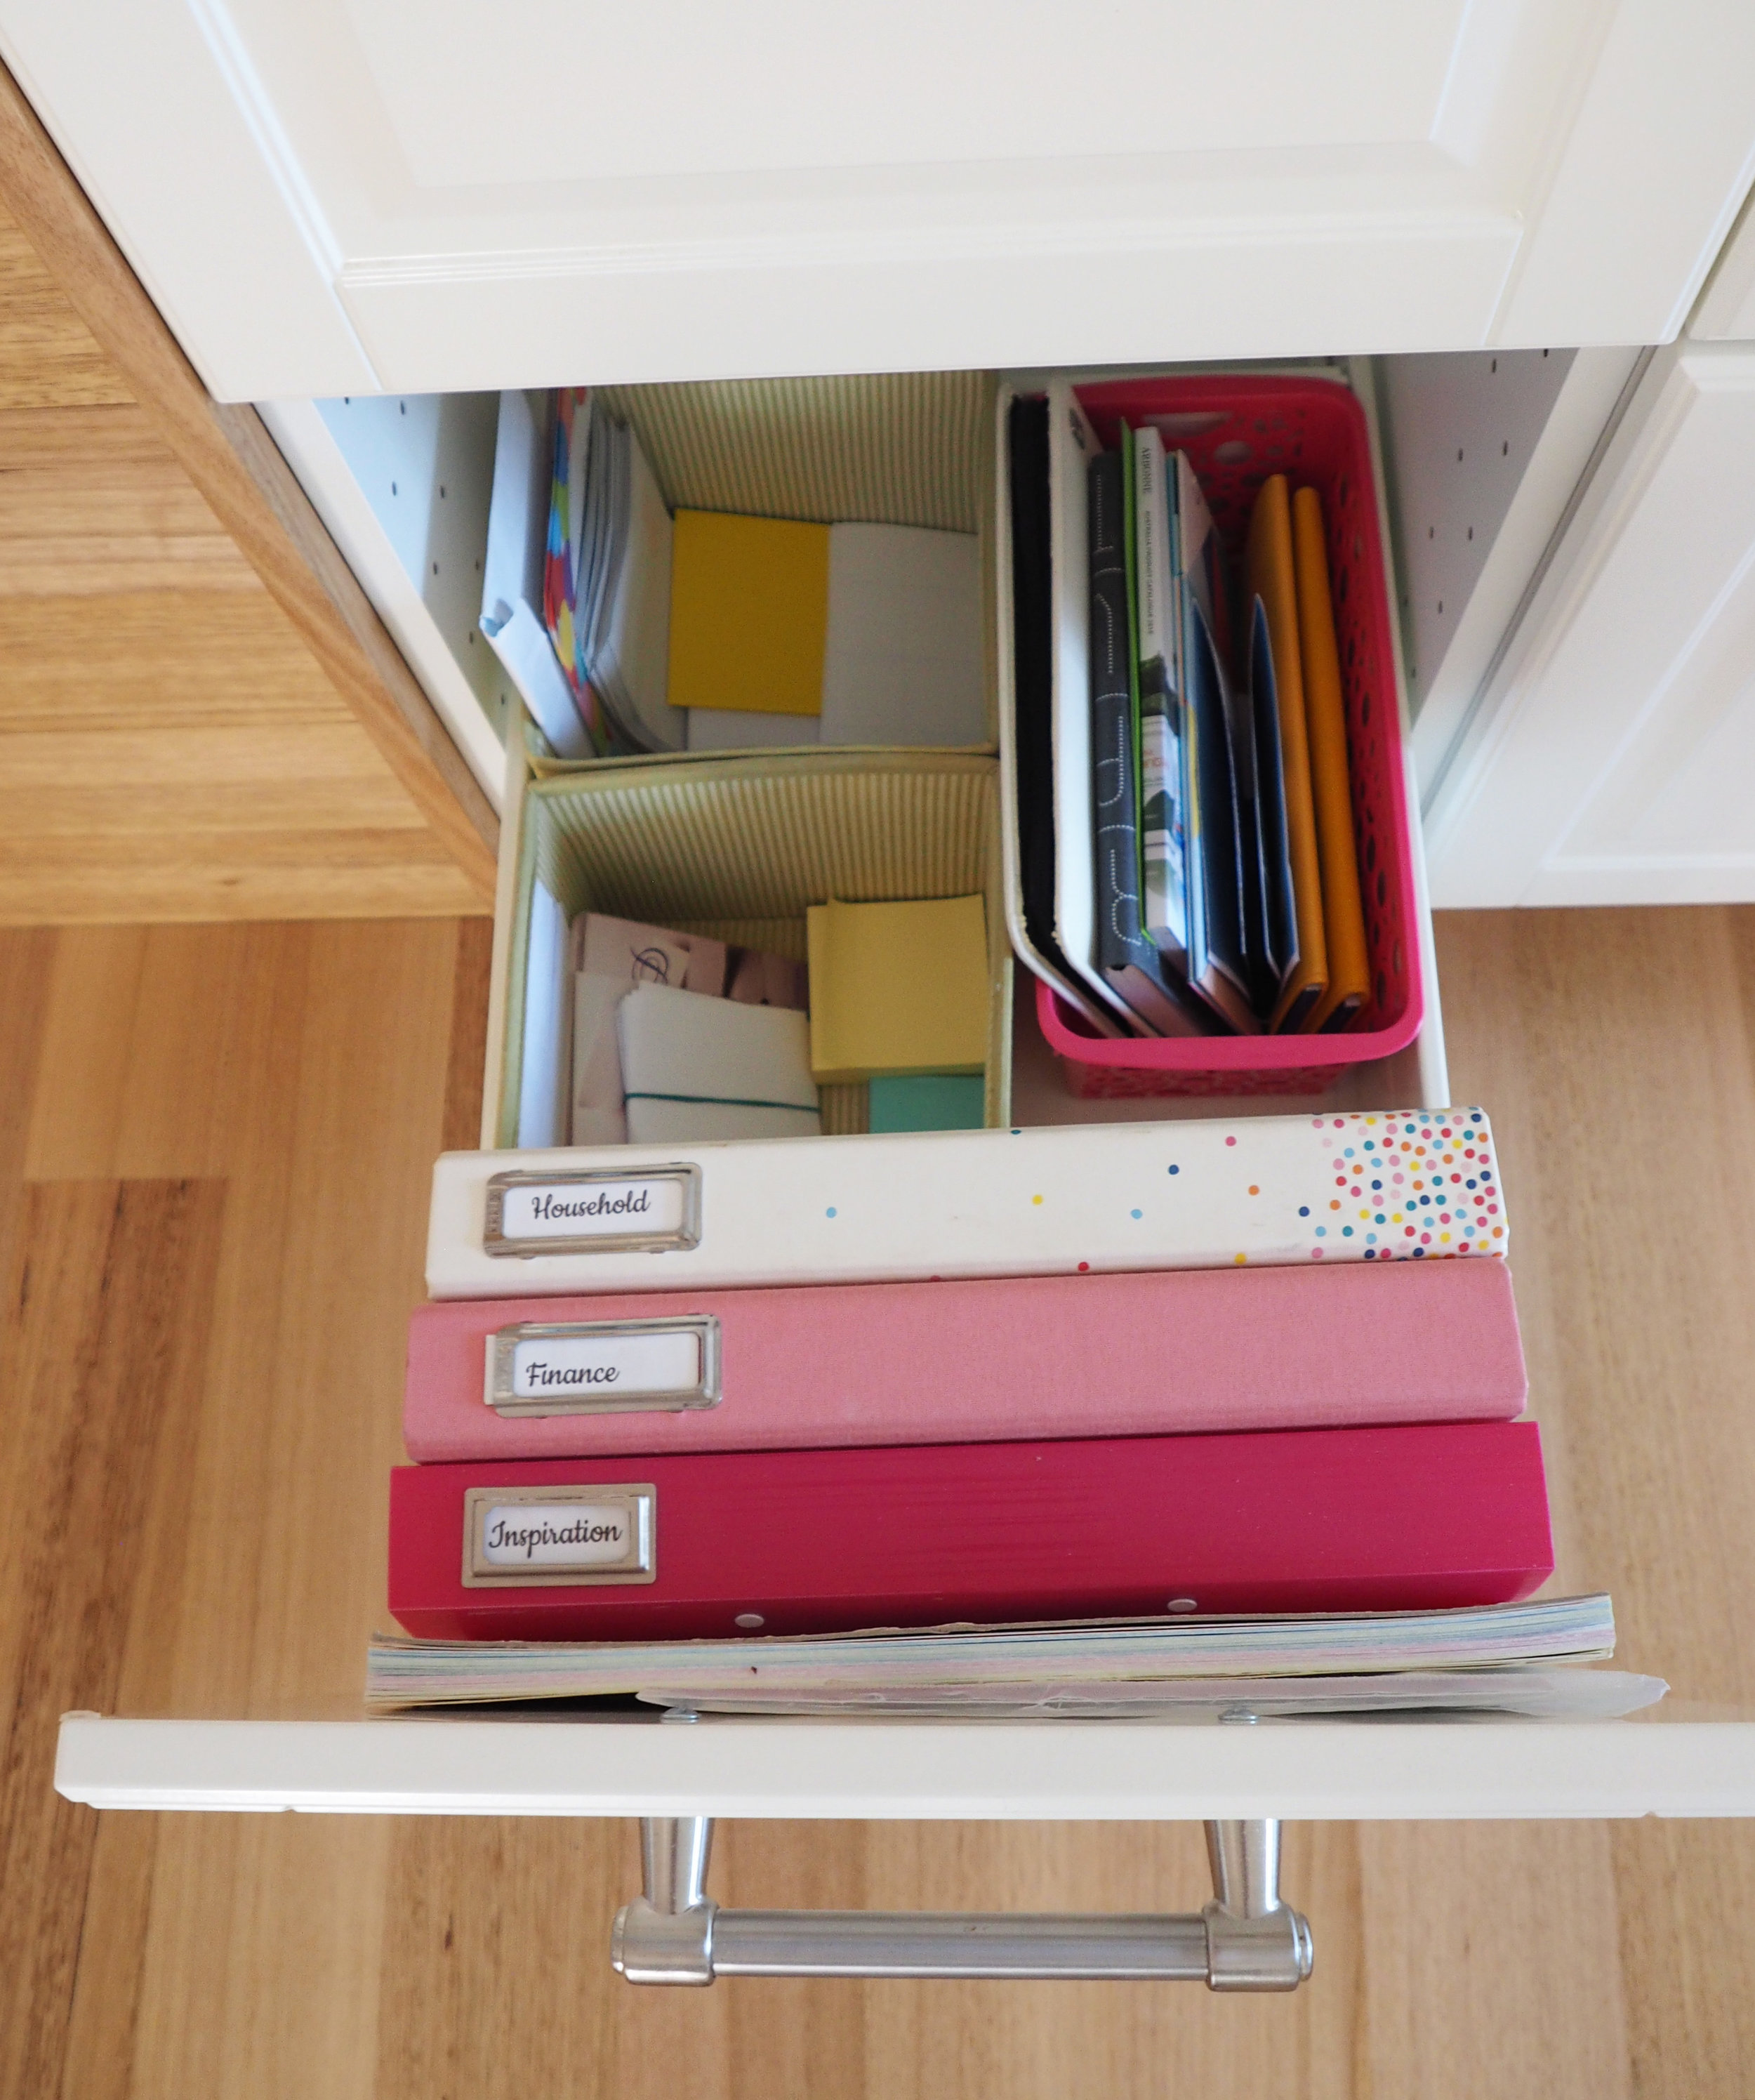 A household binder and finance binder keep you on track with important information and make everything accessible and easy to find {The Organised You}